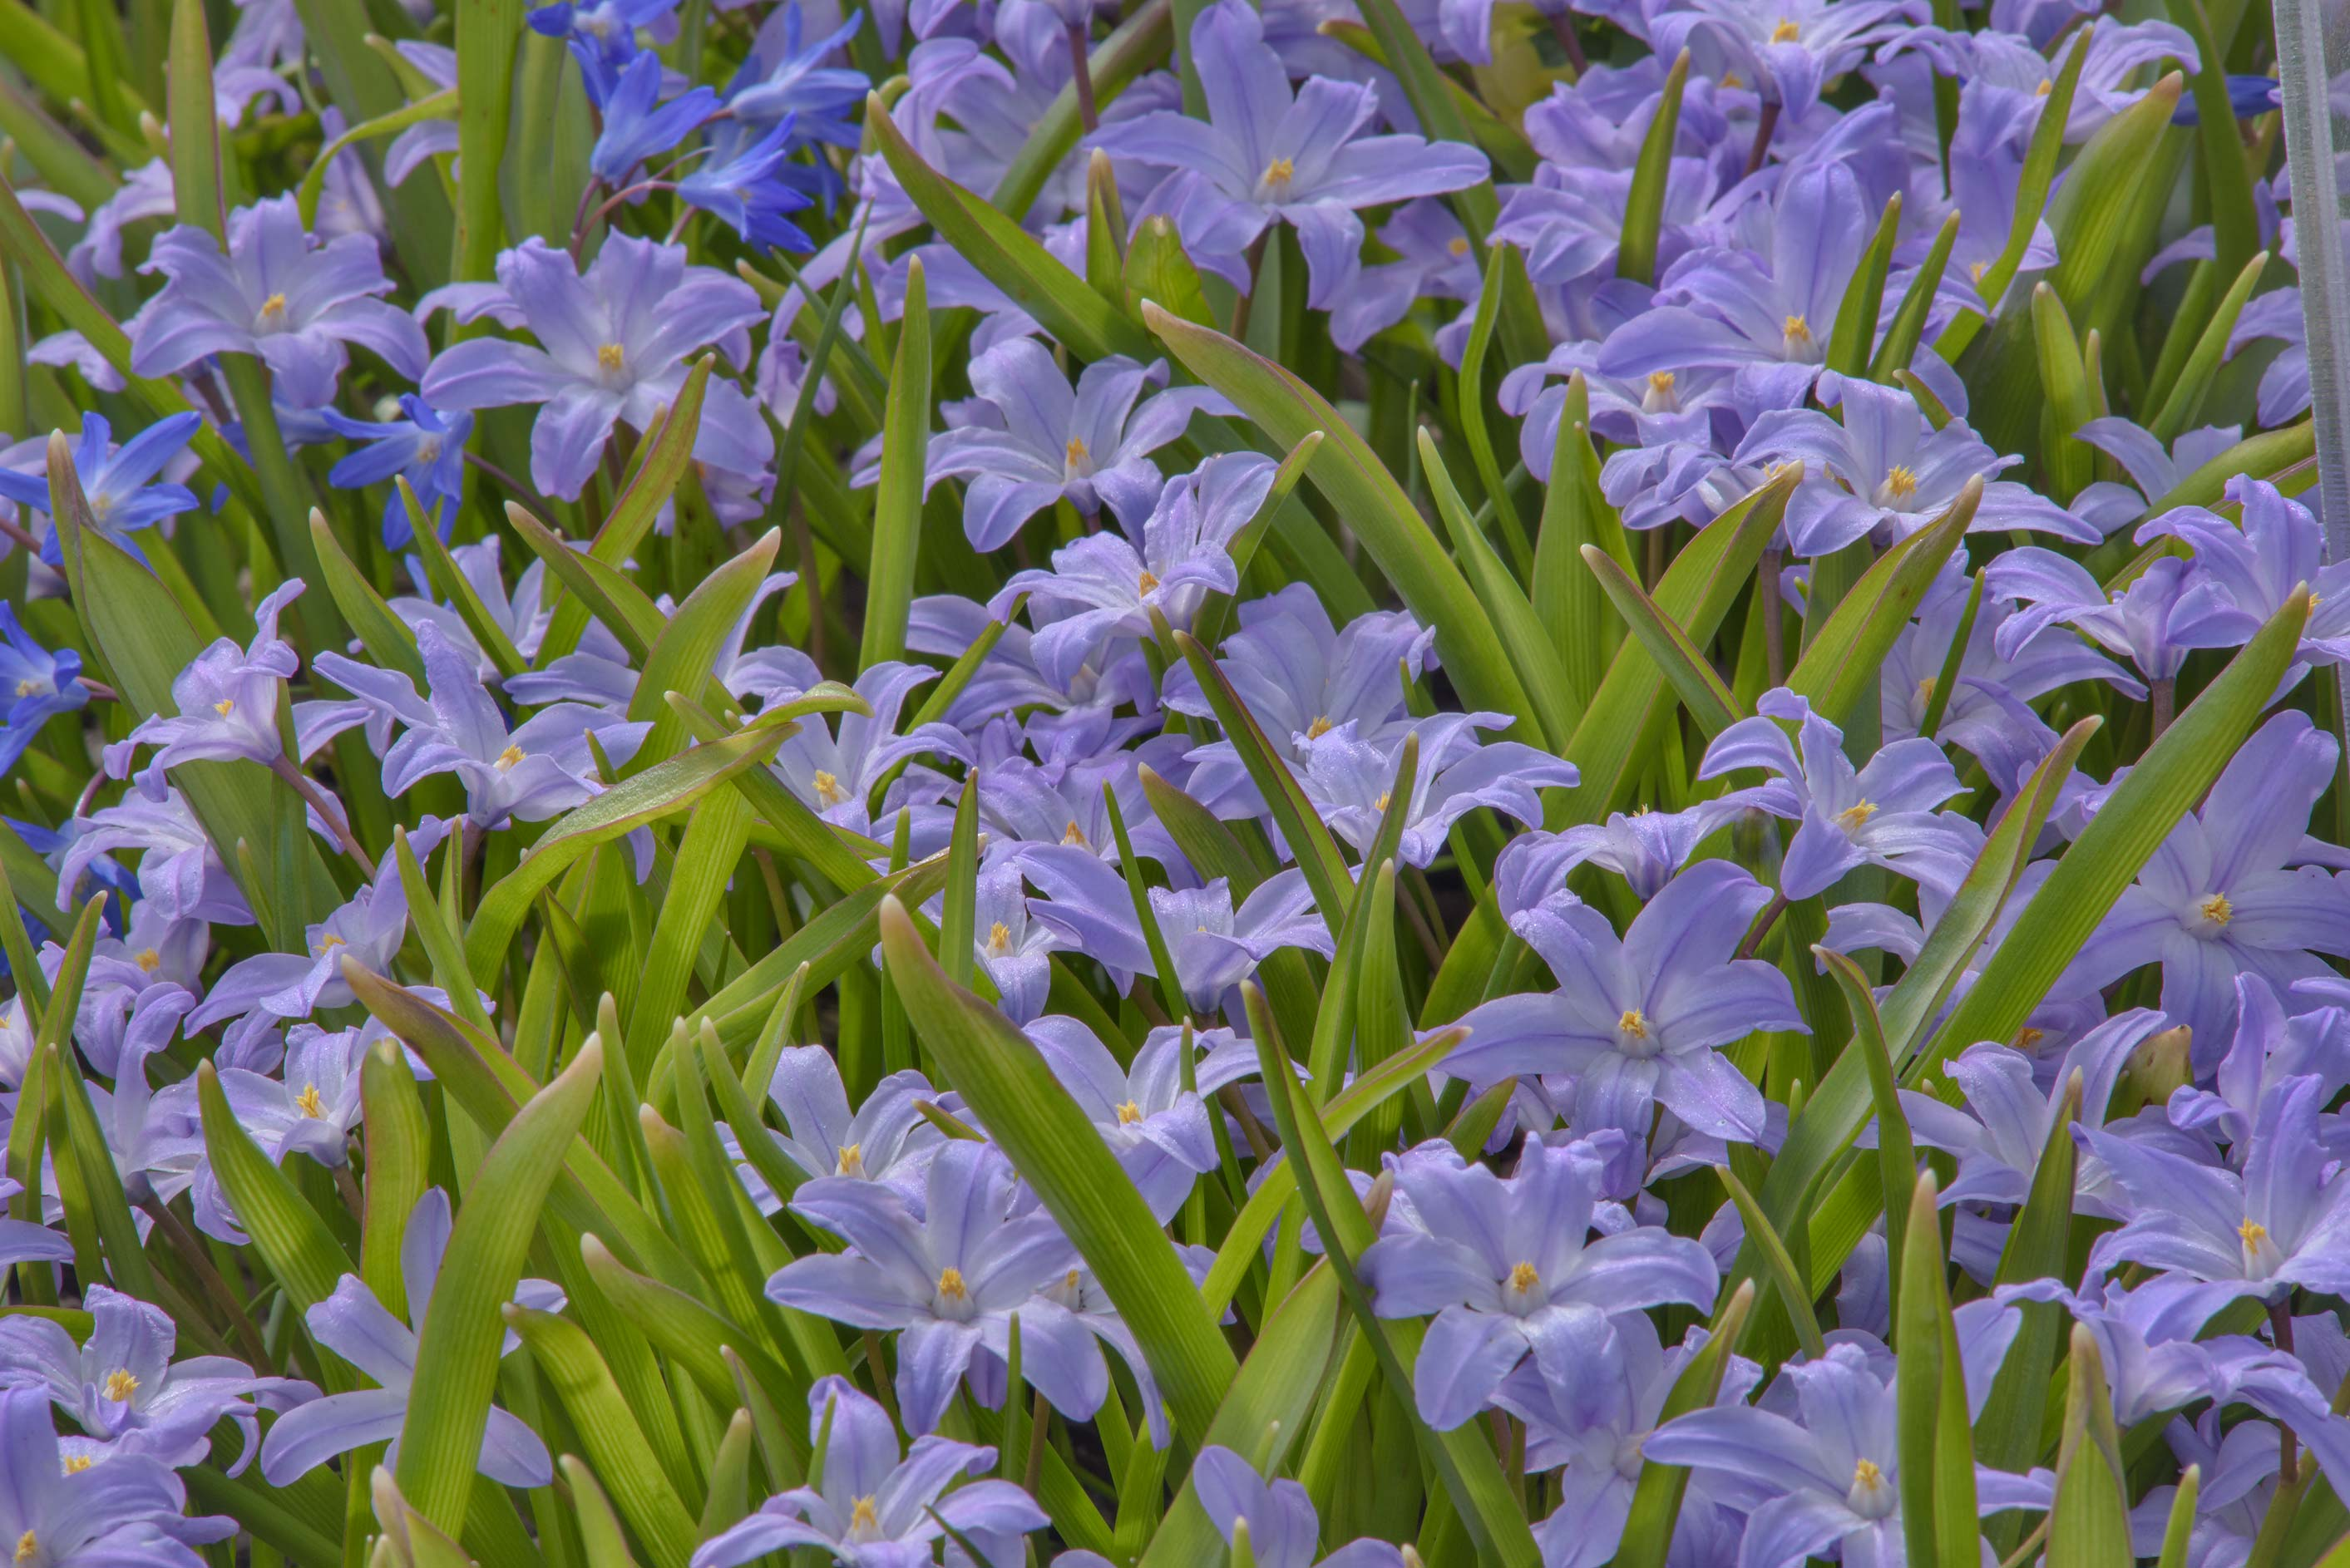 Lesser glory-of-the-snow (Chionodoxa sardensis...Institute. St.Petersburg, Russia